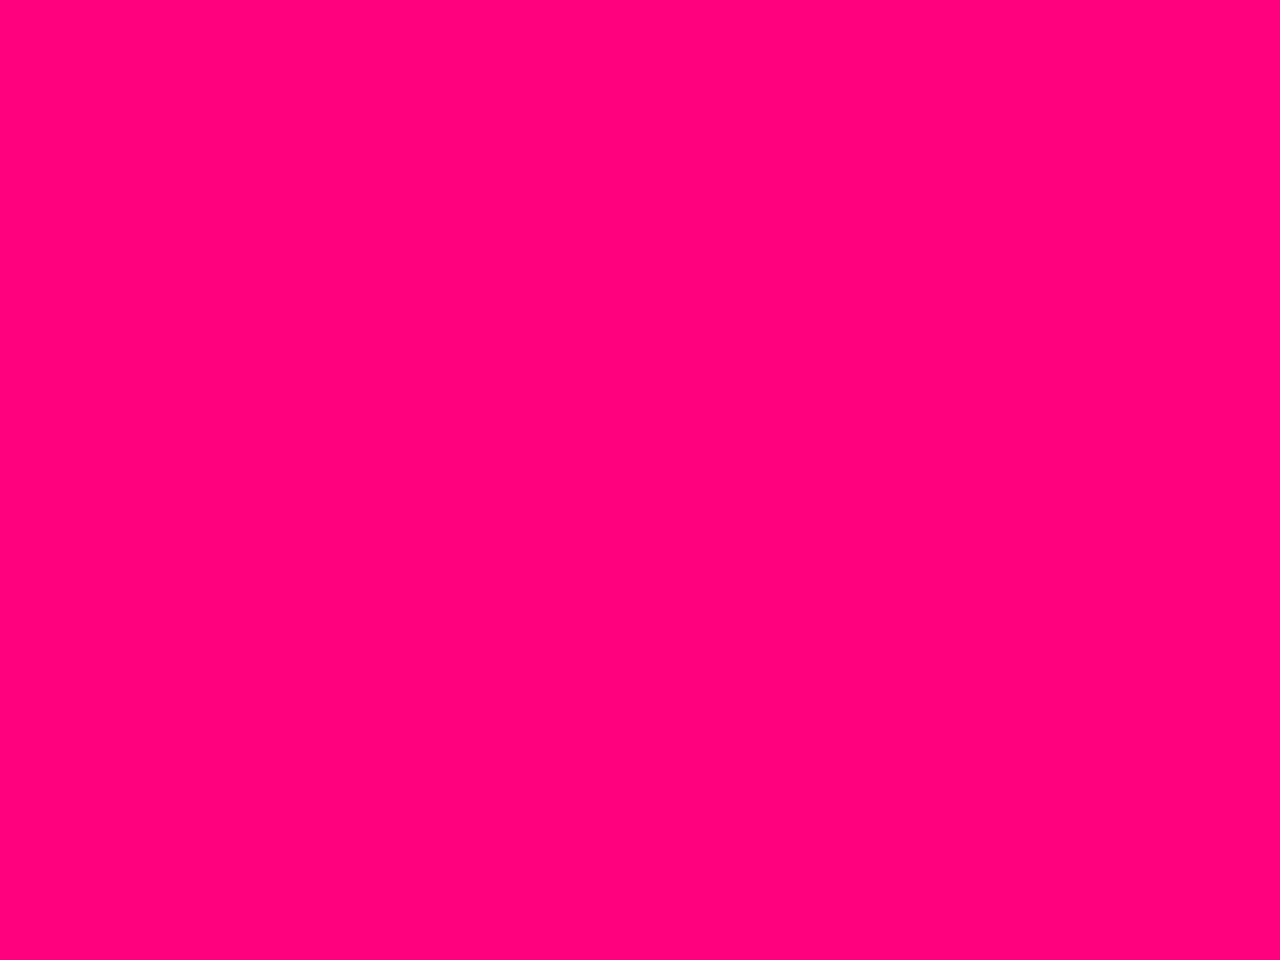 1280x960 Bright Pink Solid Color Background